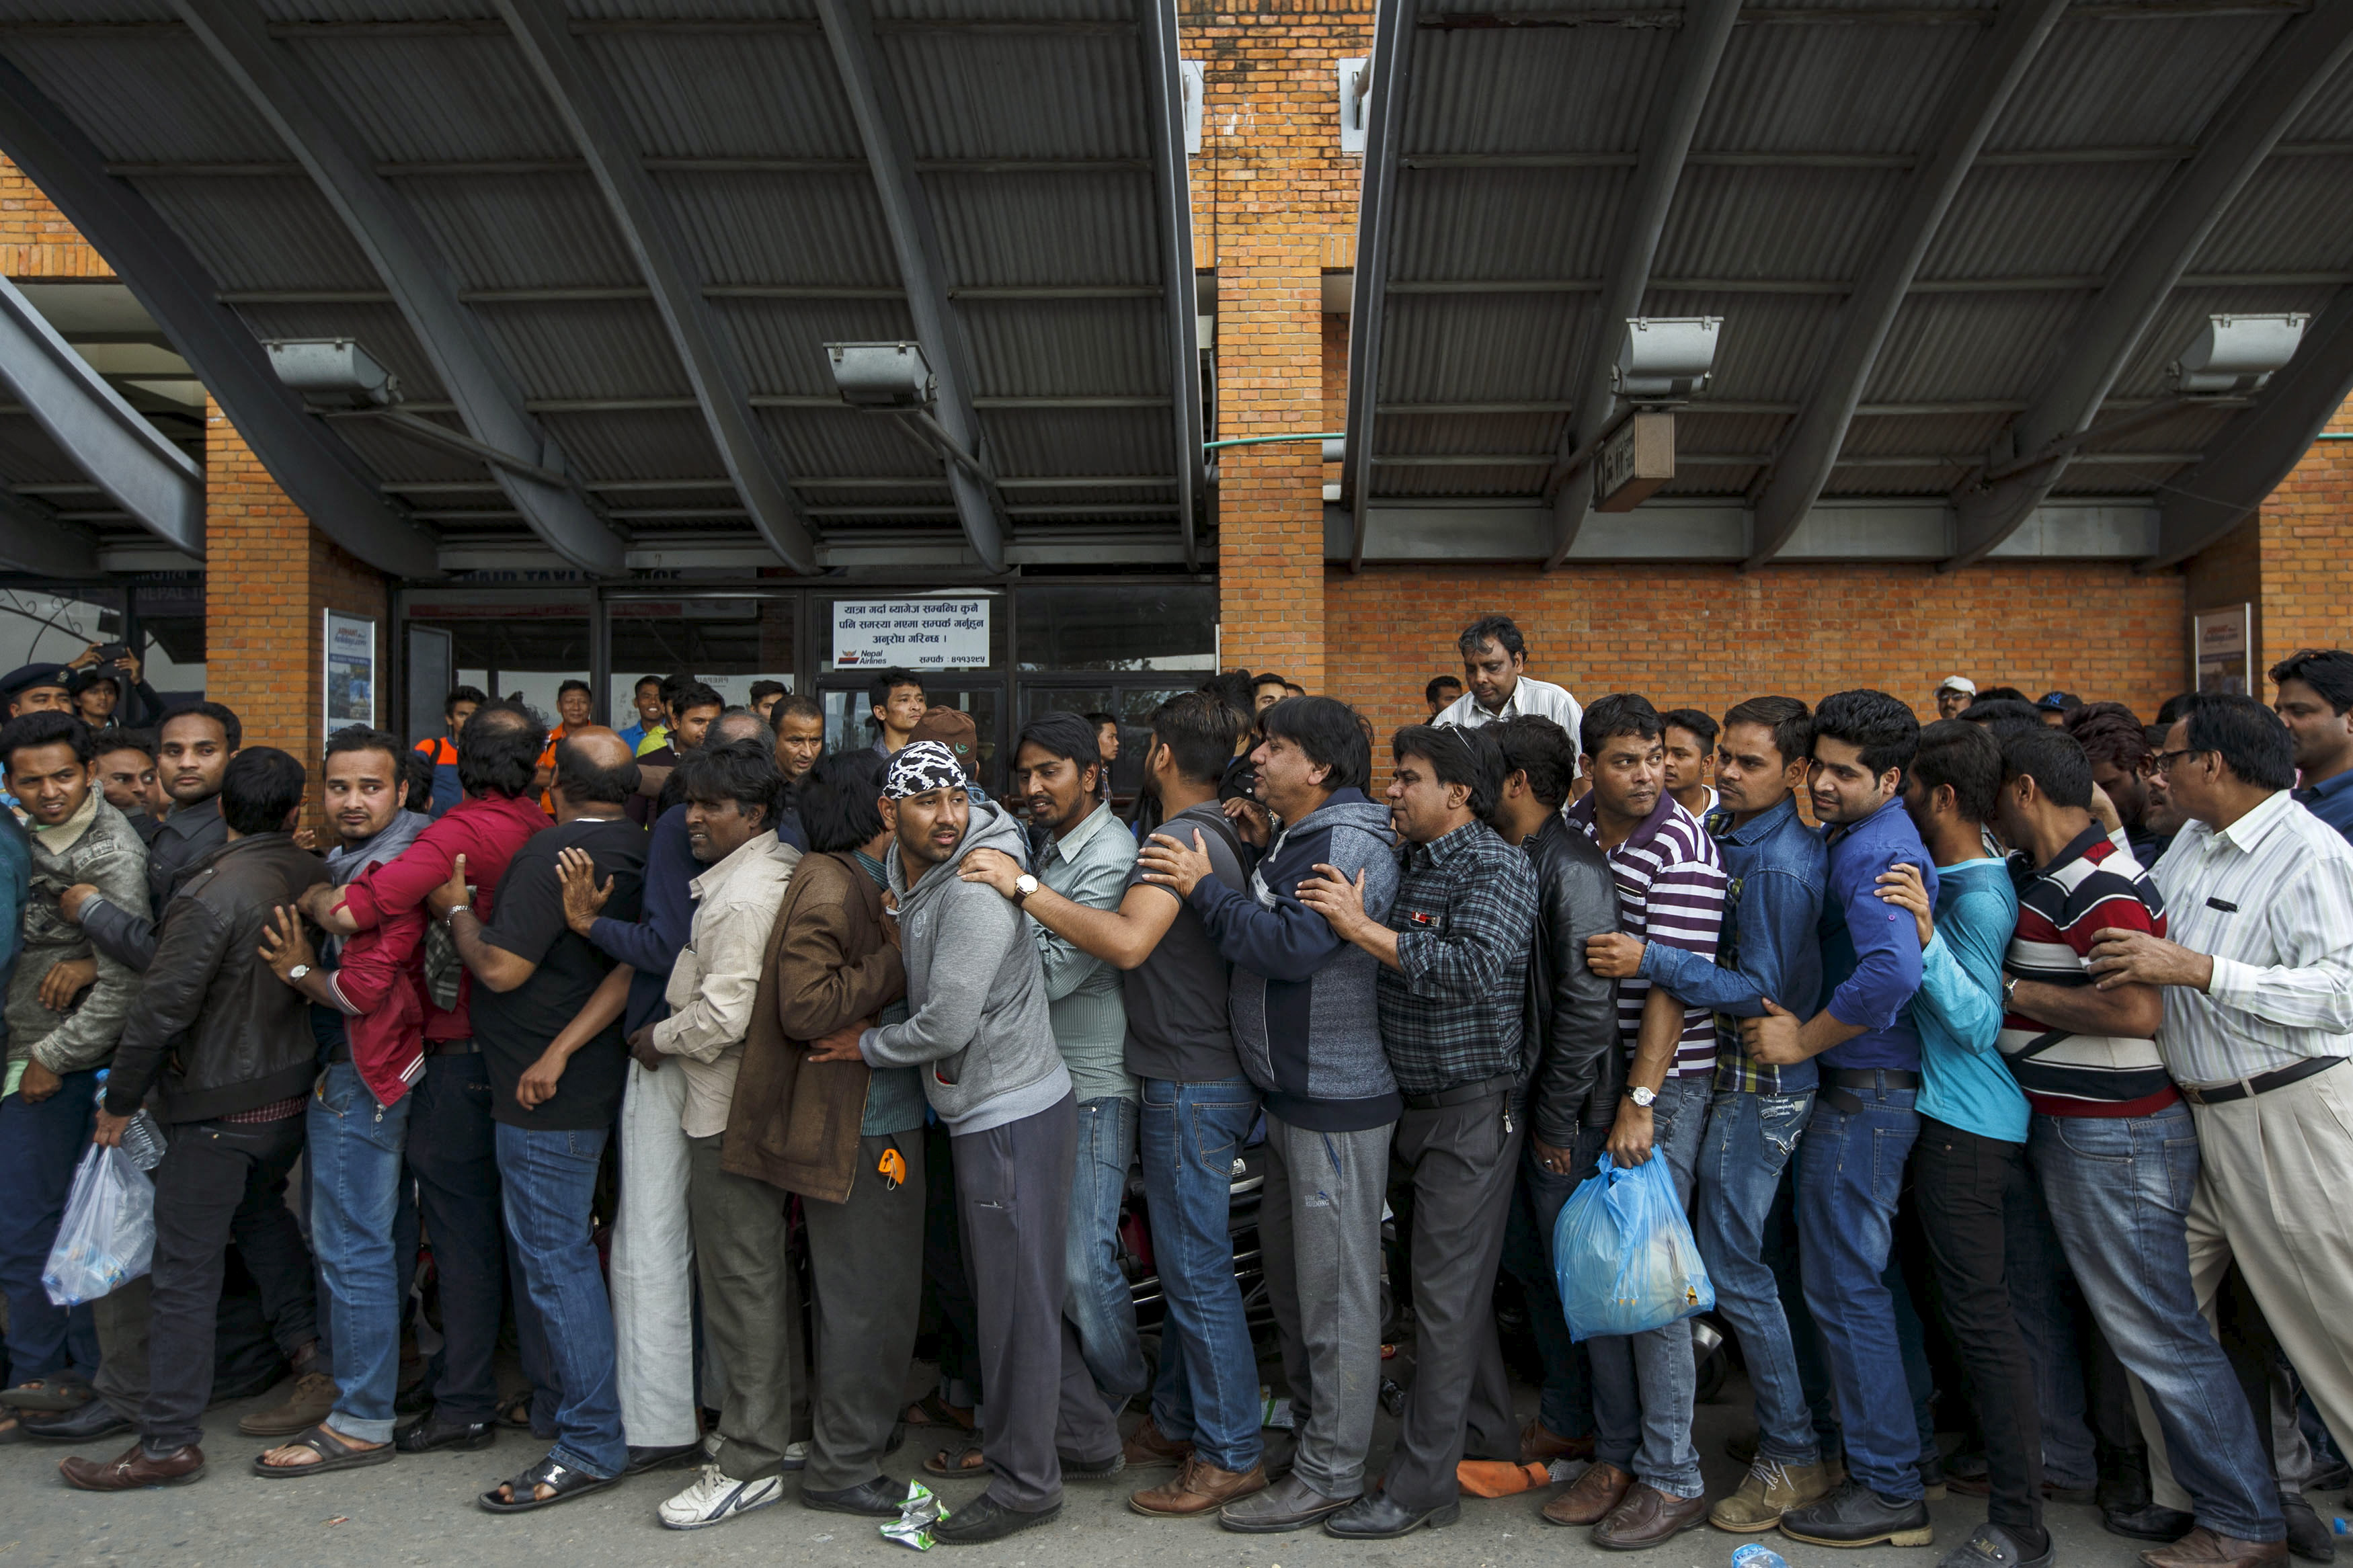 Indians queue up as they wait for an aircraft to evacuate to their country at Nepal's Tribhuvan International Airport a day after a 7.9 magnitude earthquake, in Kathmandu, Nepal April 26, 2015. Photo by Athit Perawongmetha/REUTERS.